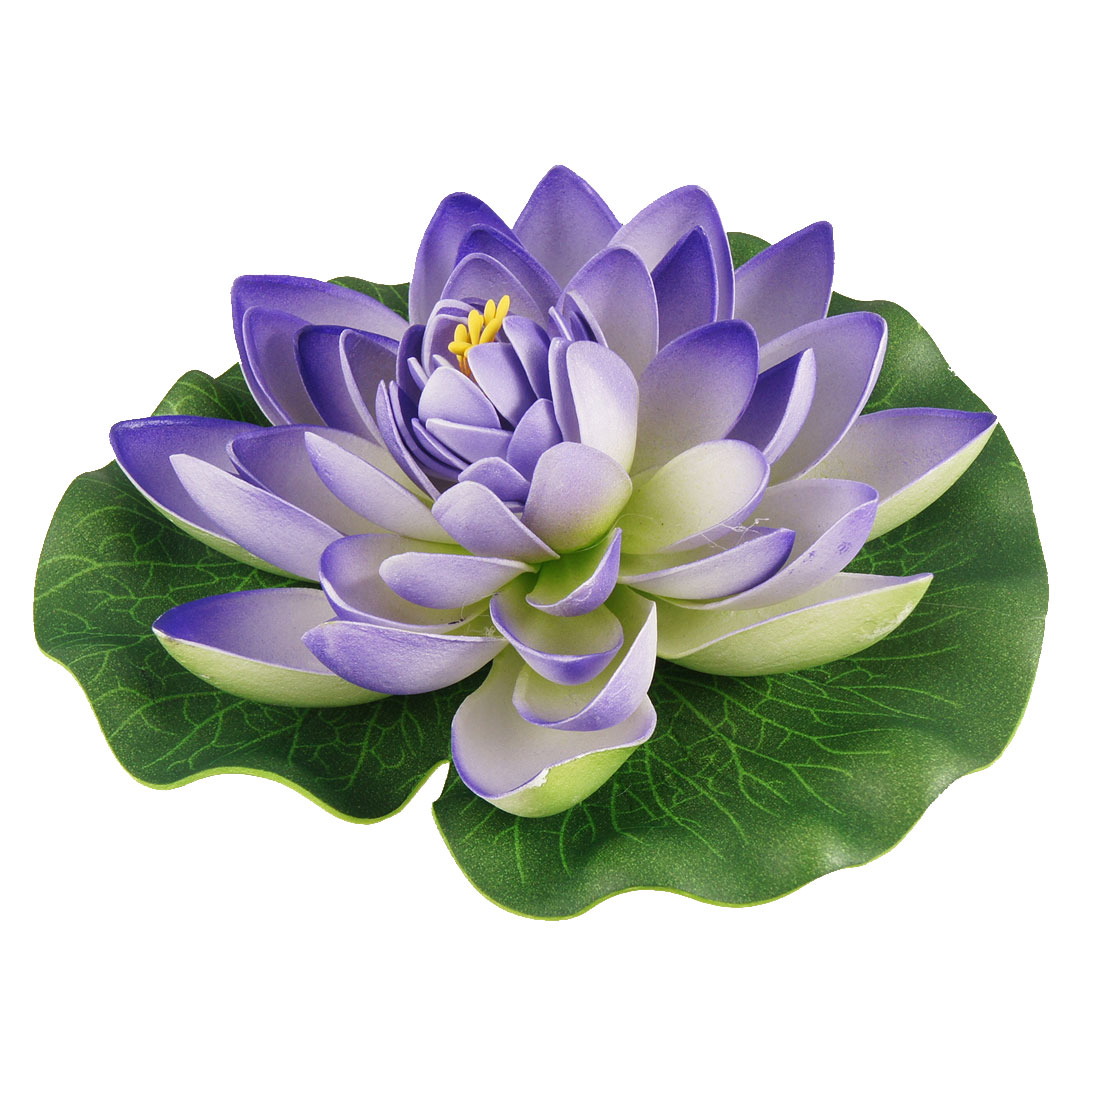 "Aquarium Fish Tank Ornament 7"" Diameter Foam Lotus Purple Green"